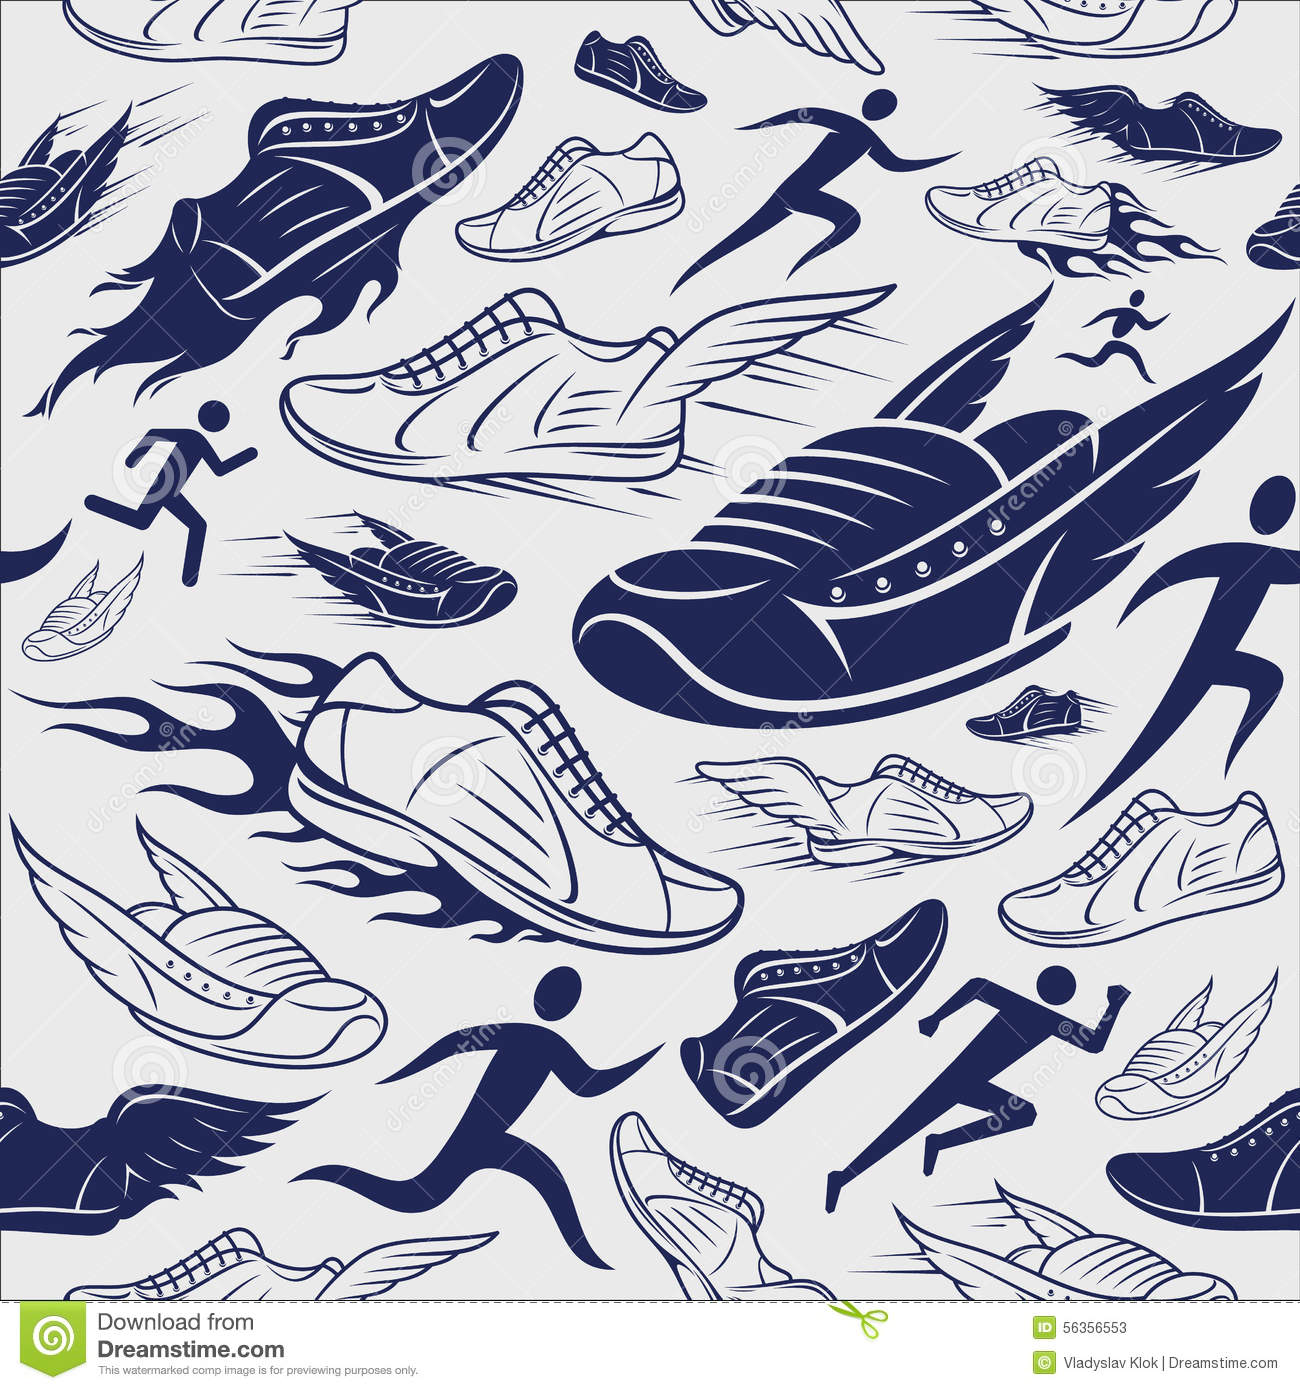 Can I Put Wallpaper On Top Of Wallpaper: Sport Shoes, Running Man Background, Seamles Pattern